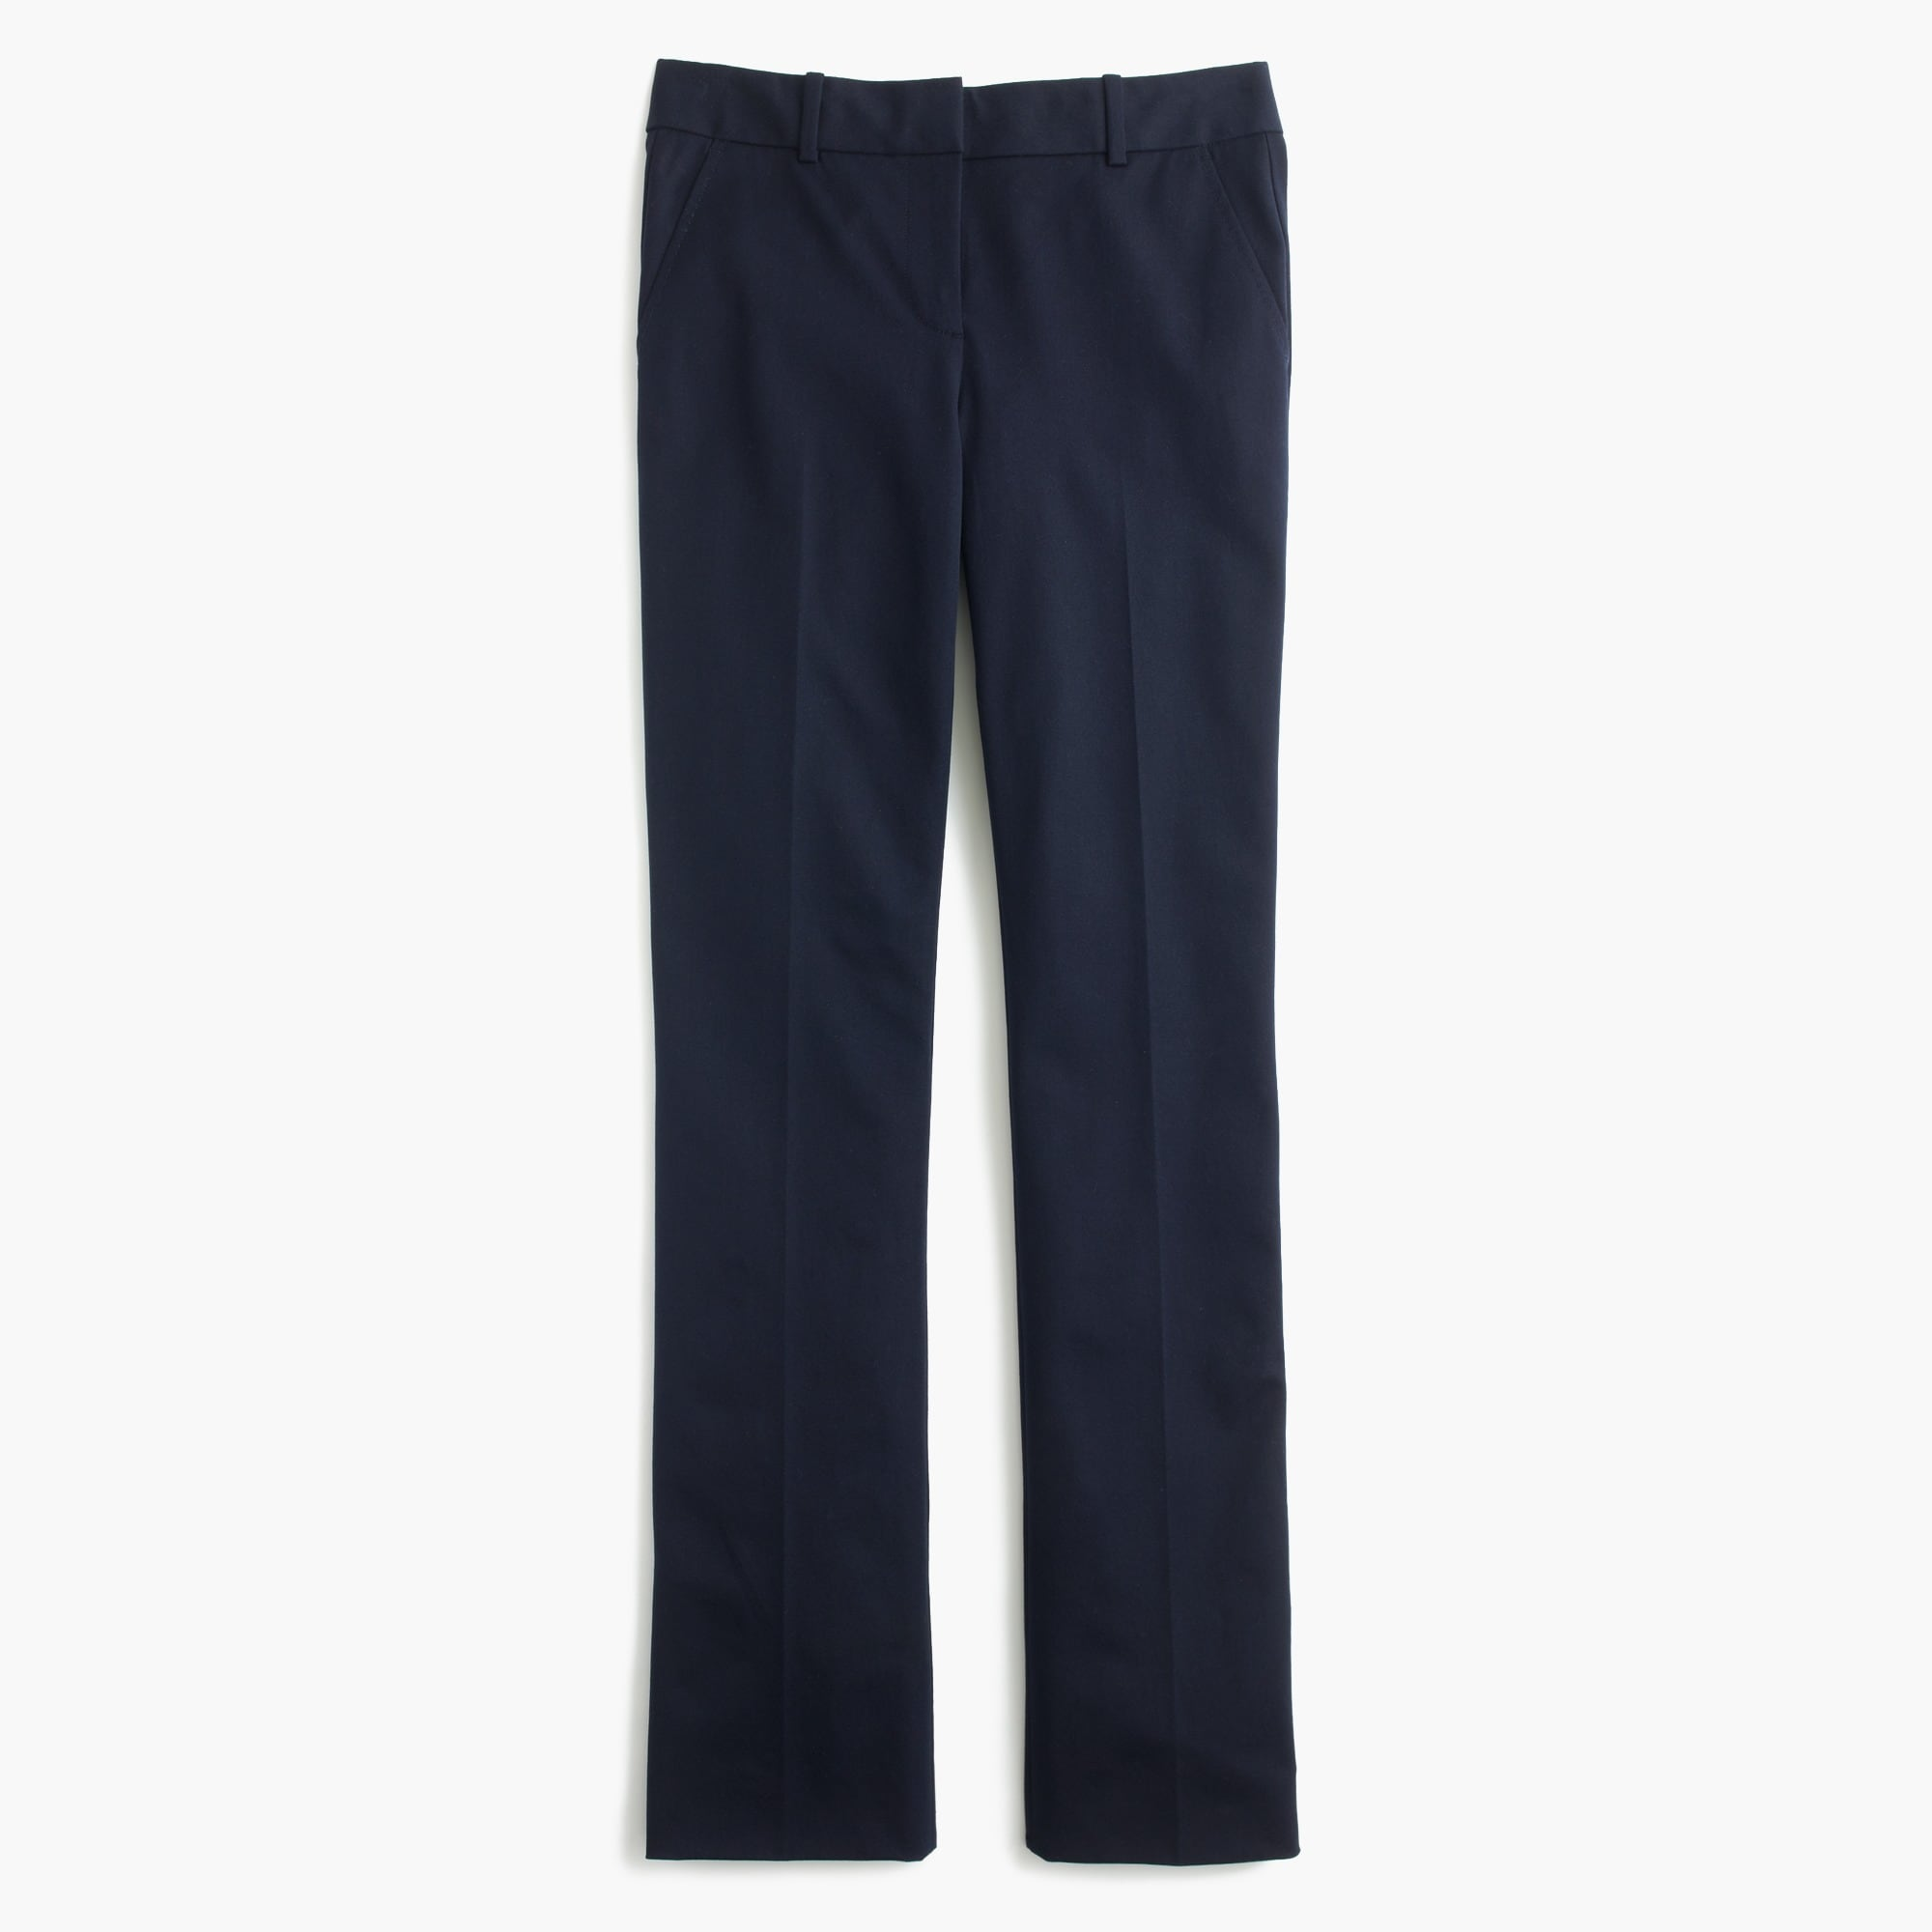 Tall Campbell trouser in two-way stretch cotton